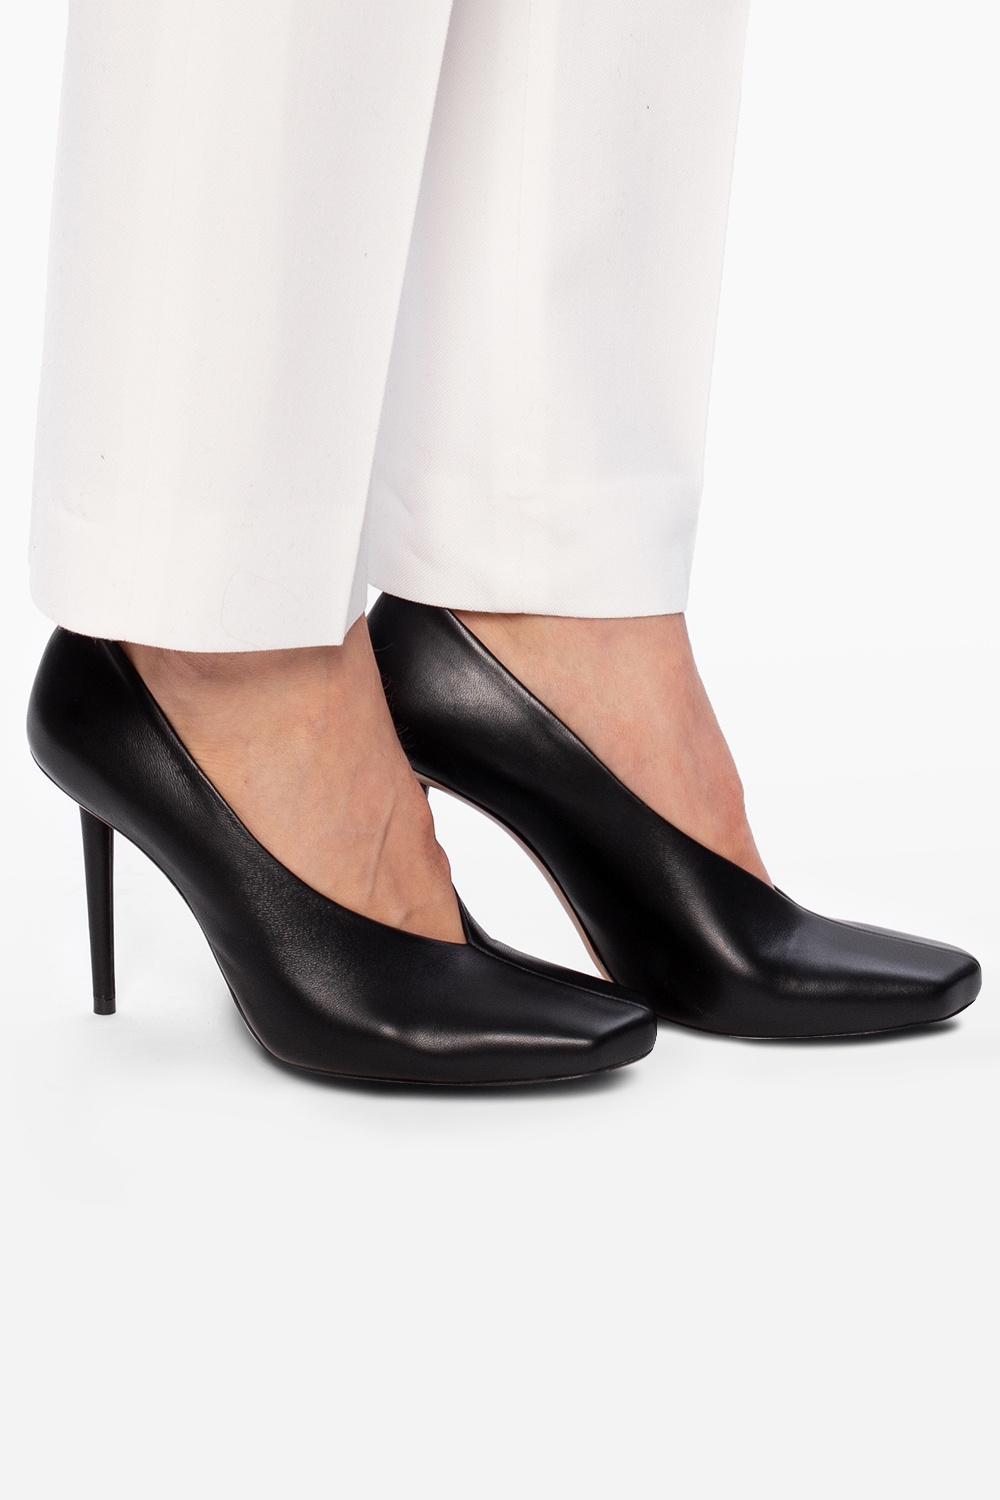 Burberry 'Sculptural' pumps